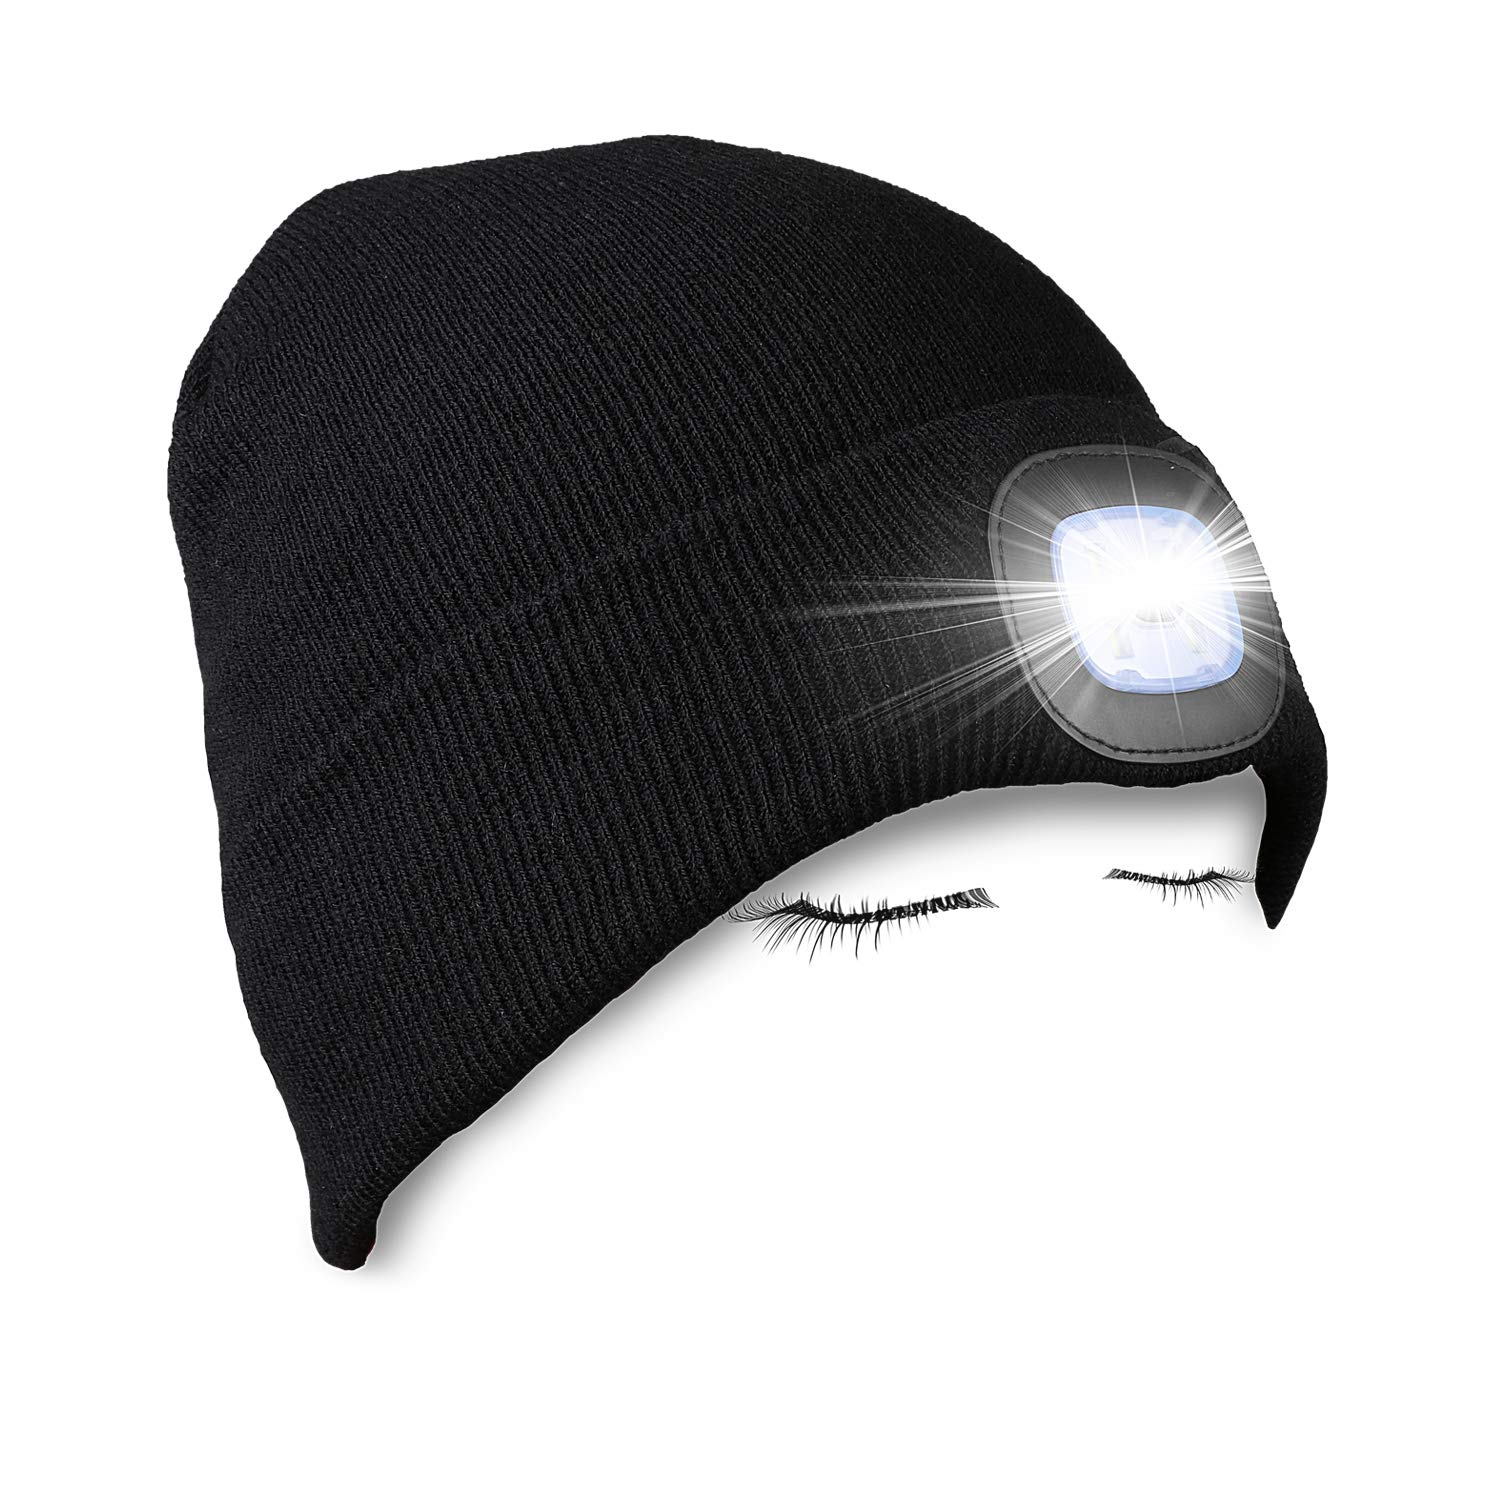 PRAVETTE Unisex Lighted Beanie Cap Hands Free Headlamp Hat Winter Warm Knit Cap with Adjustable LED Brightness for Men,Women,Dog Walking, Hiking, Jogging, Camping, Handyman Working